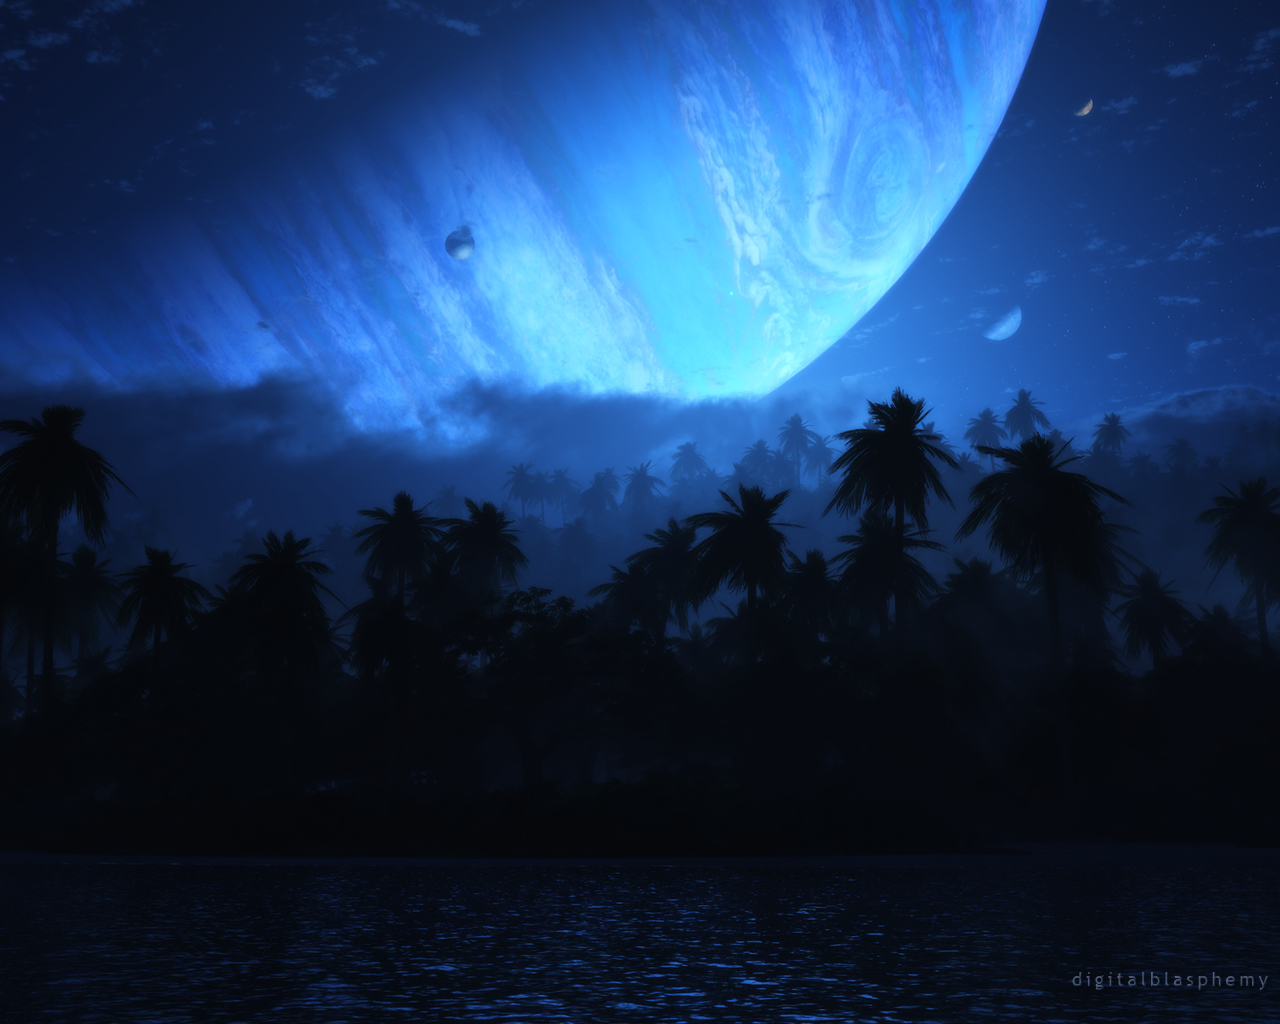 Digital Blasphemy 3D Wallpaper: Atoll (Nightfall) (2012) FREE